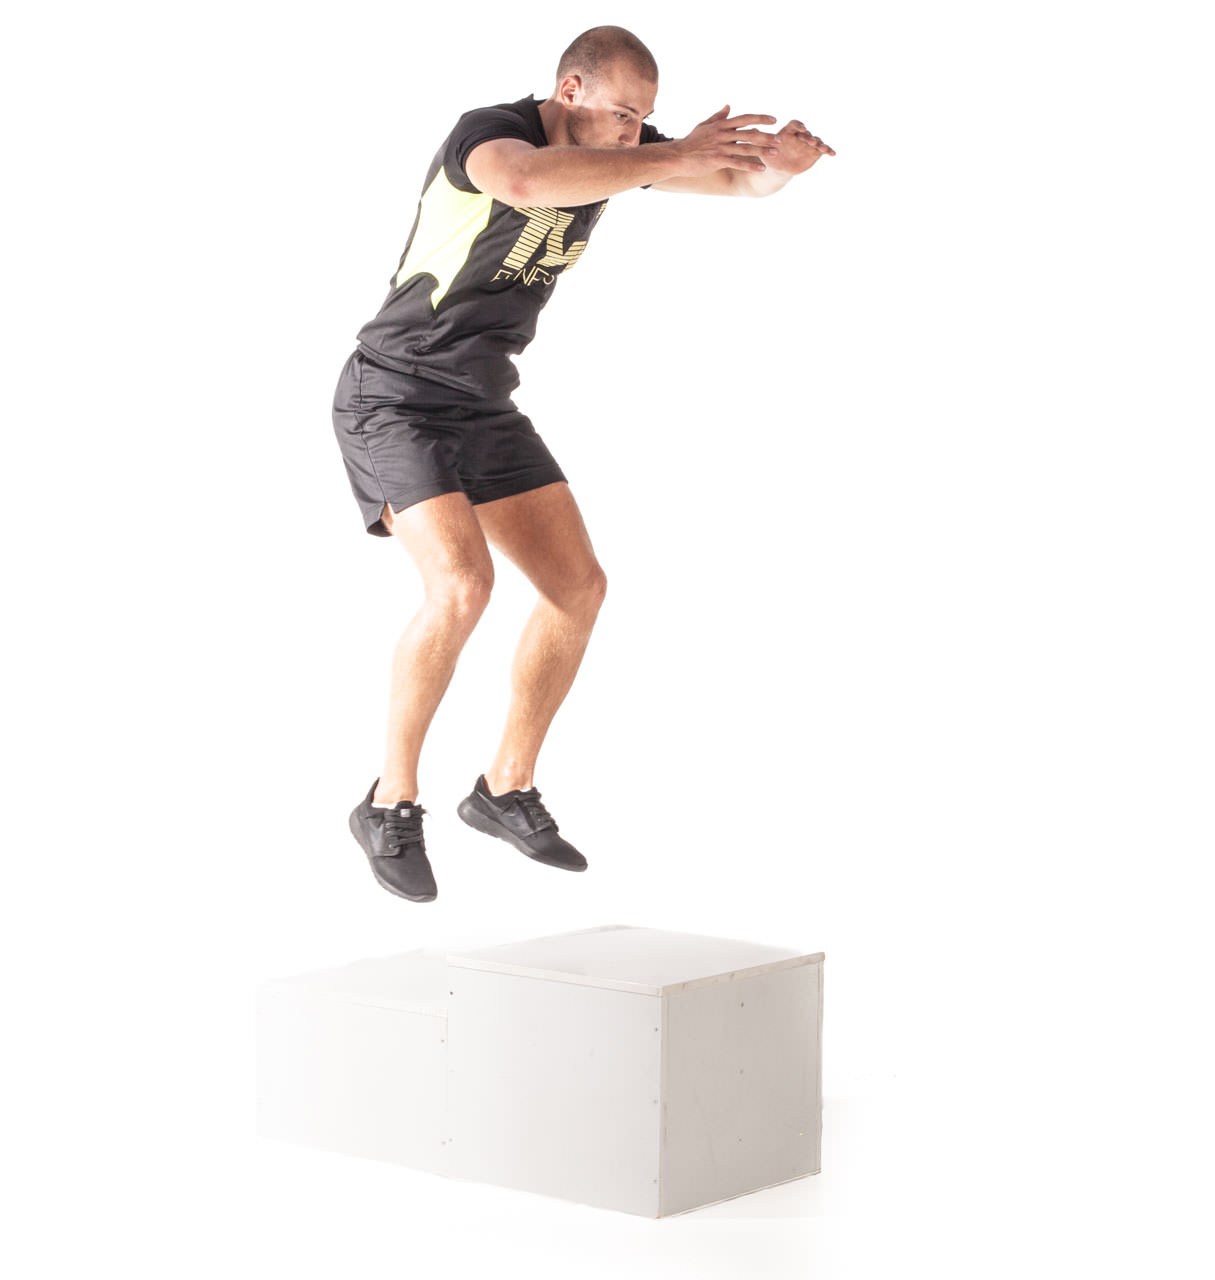 Two-Box Jump frame #4